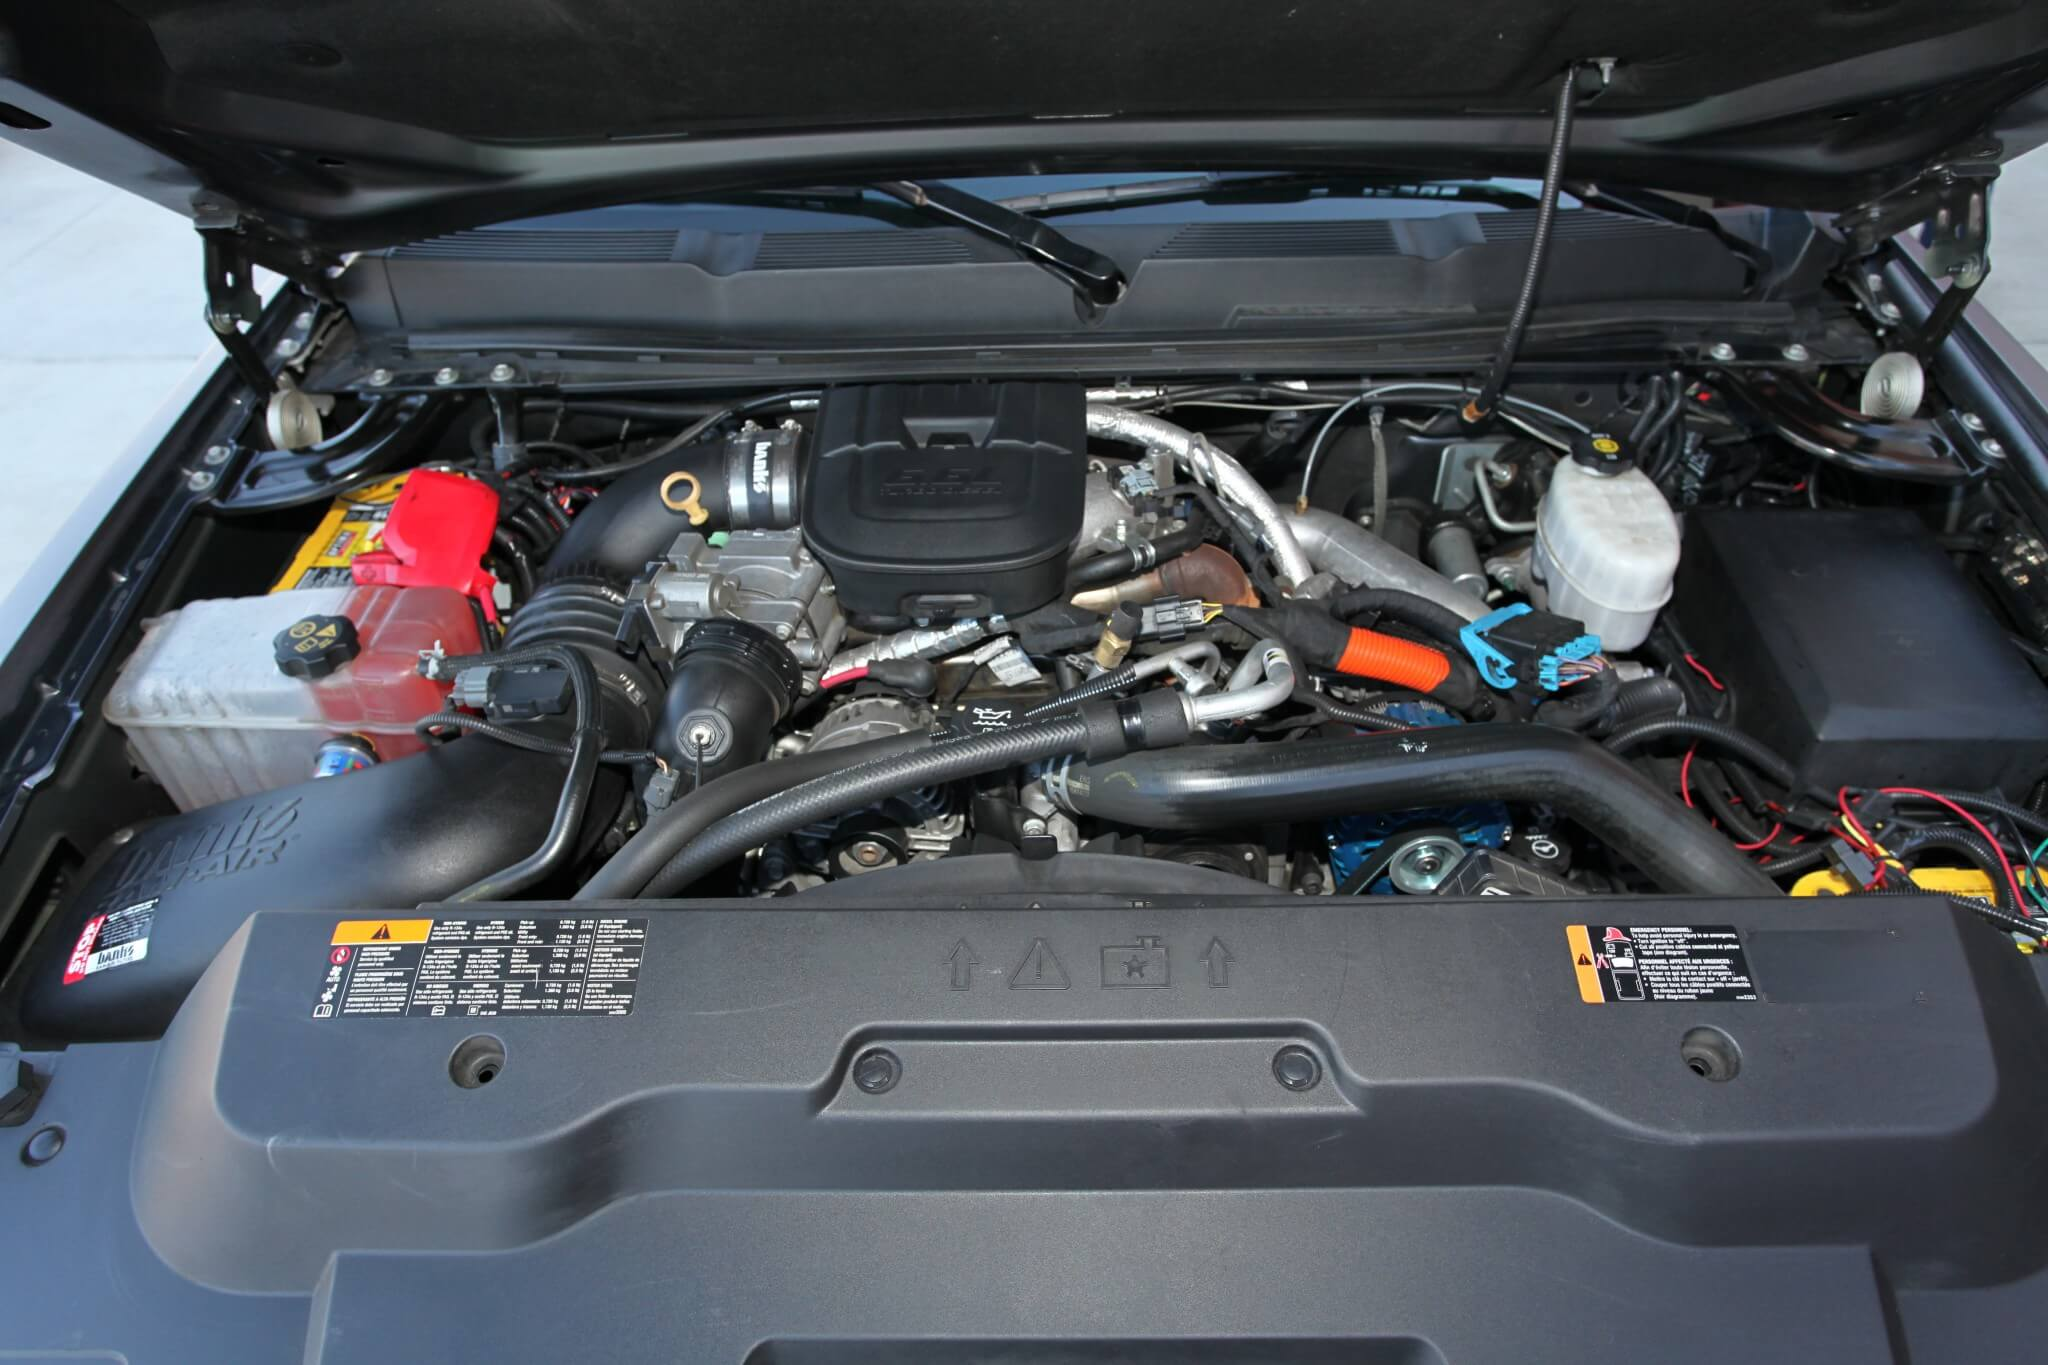 Lifting the hood exposes the mighty Duramax 6.6L turbo diesel that's equipped with a Banks cold air intake and tuned by an H&S Mini Maxx programmer.